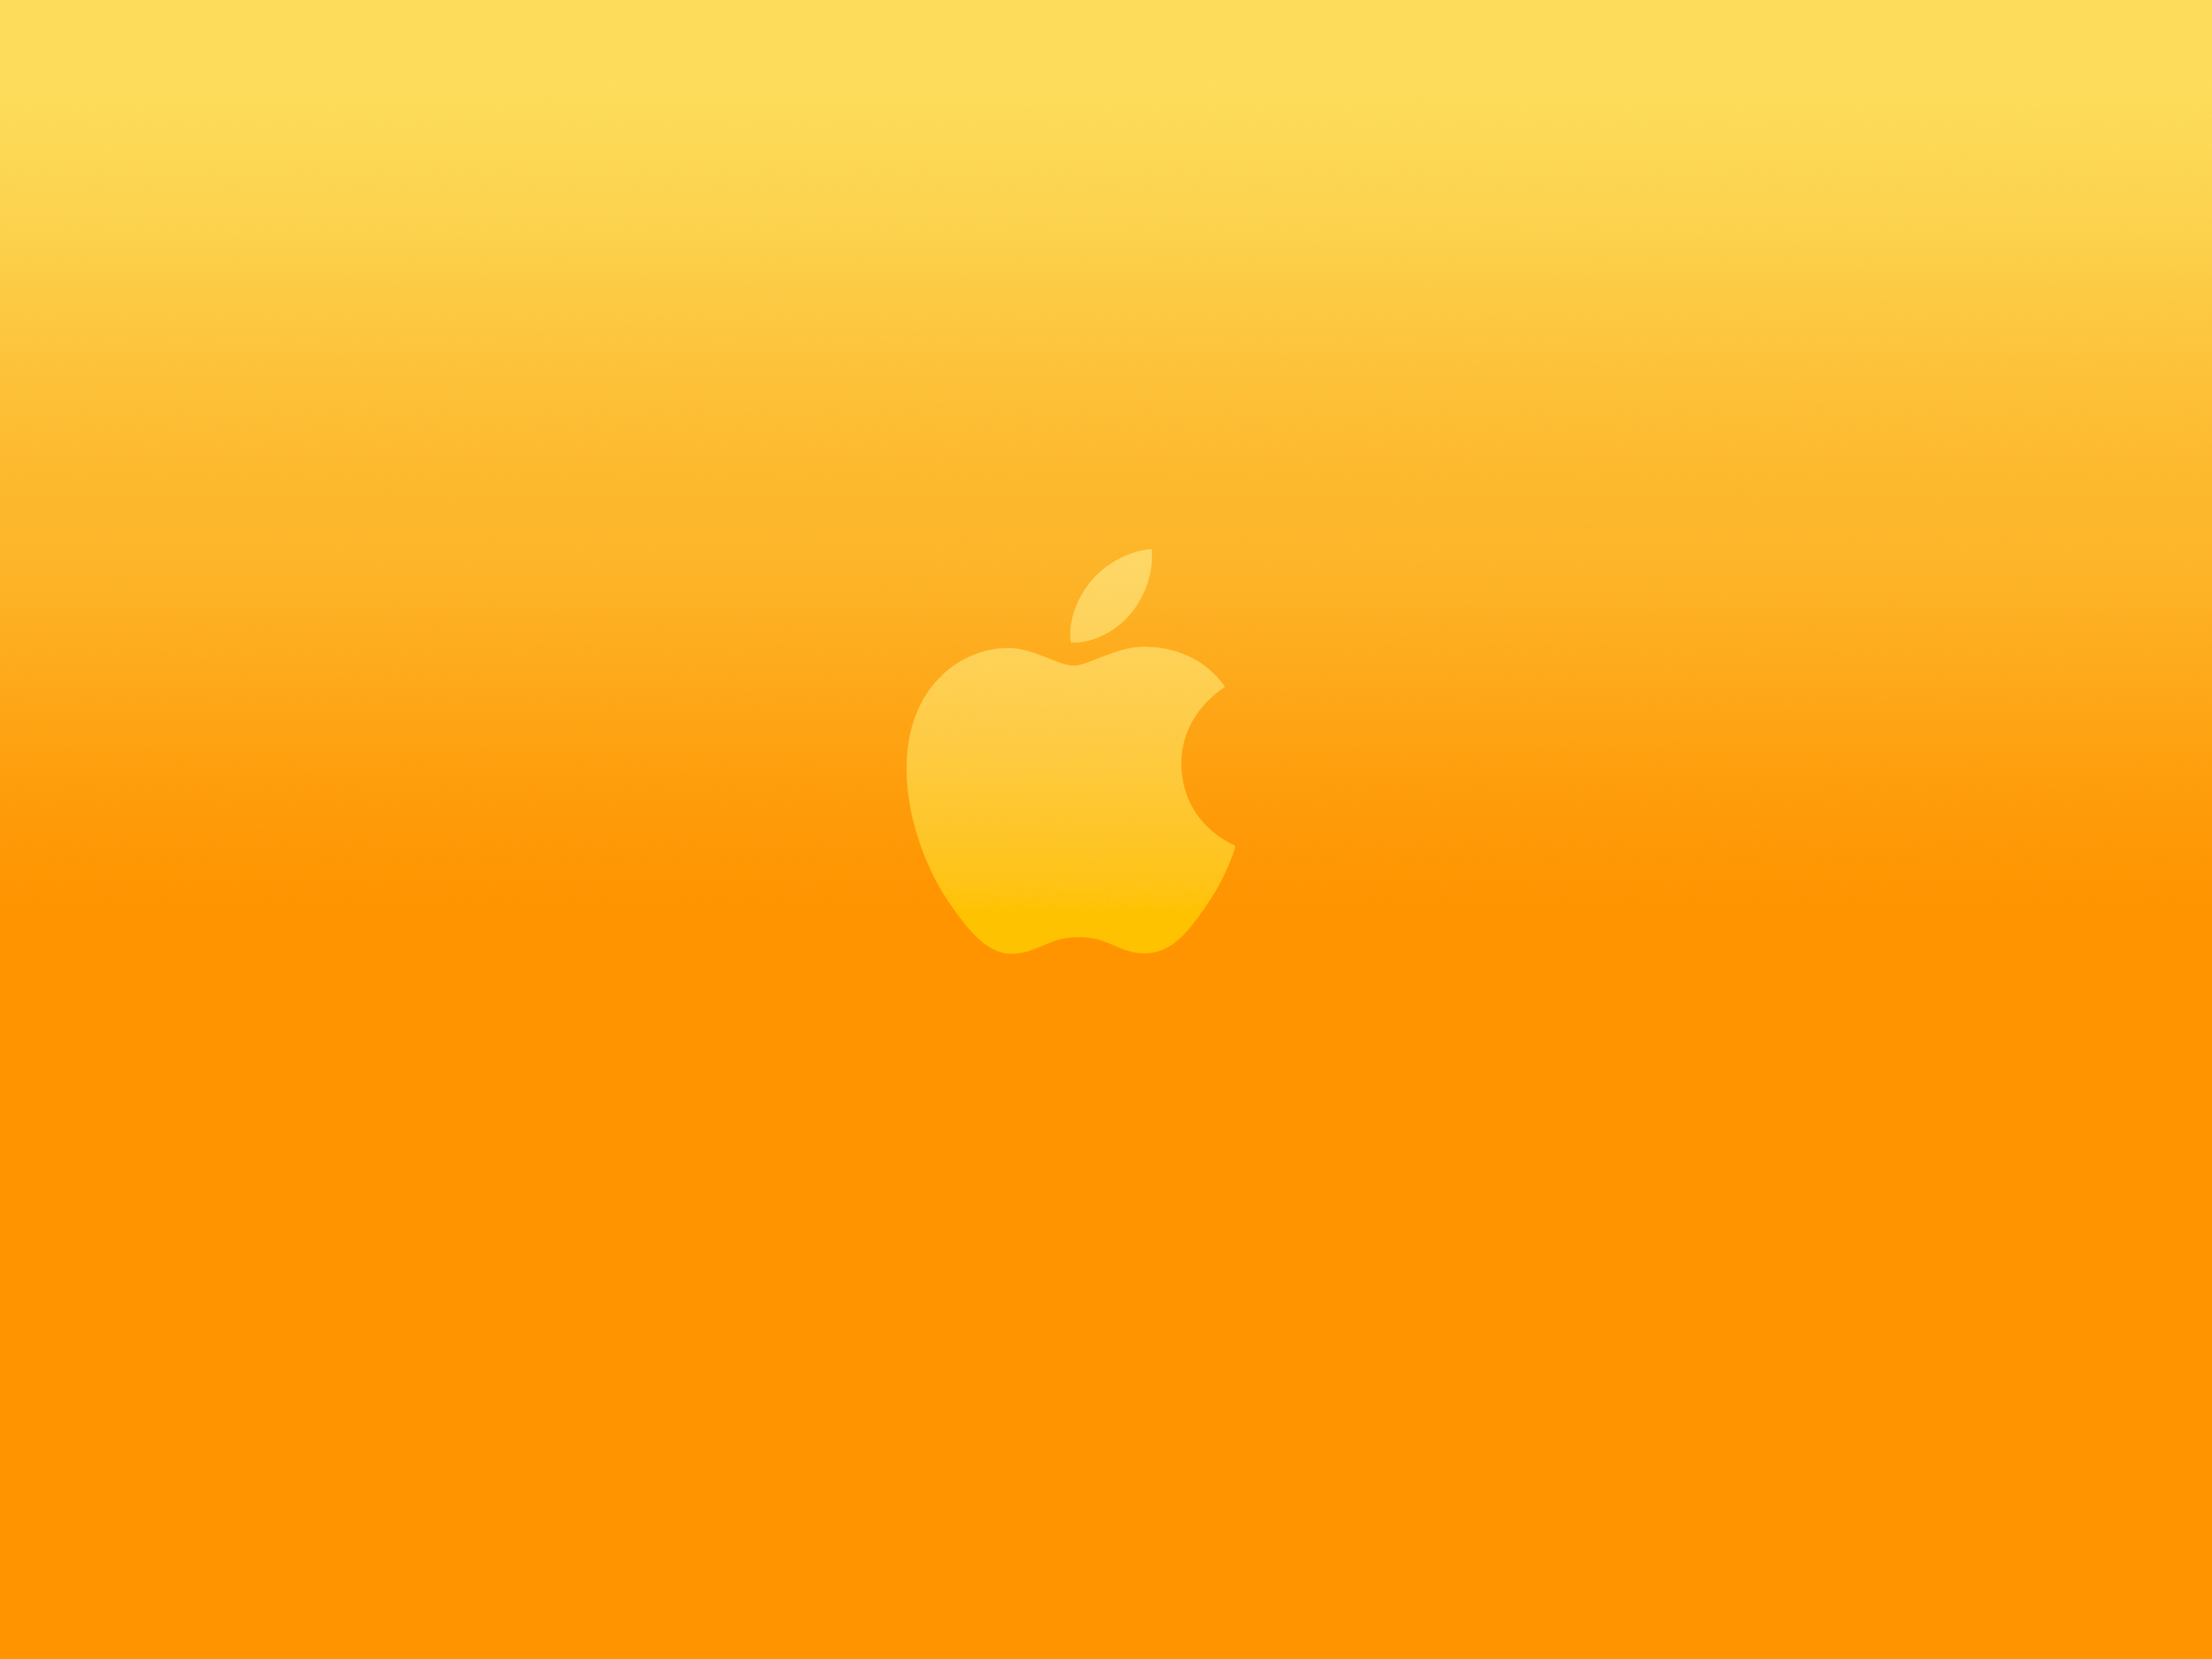 bright orange apple logo 2880x2160